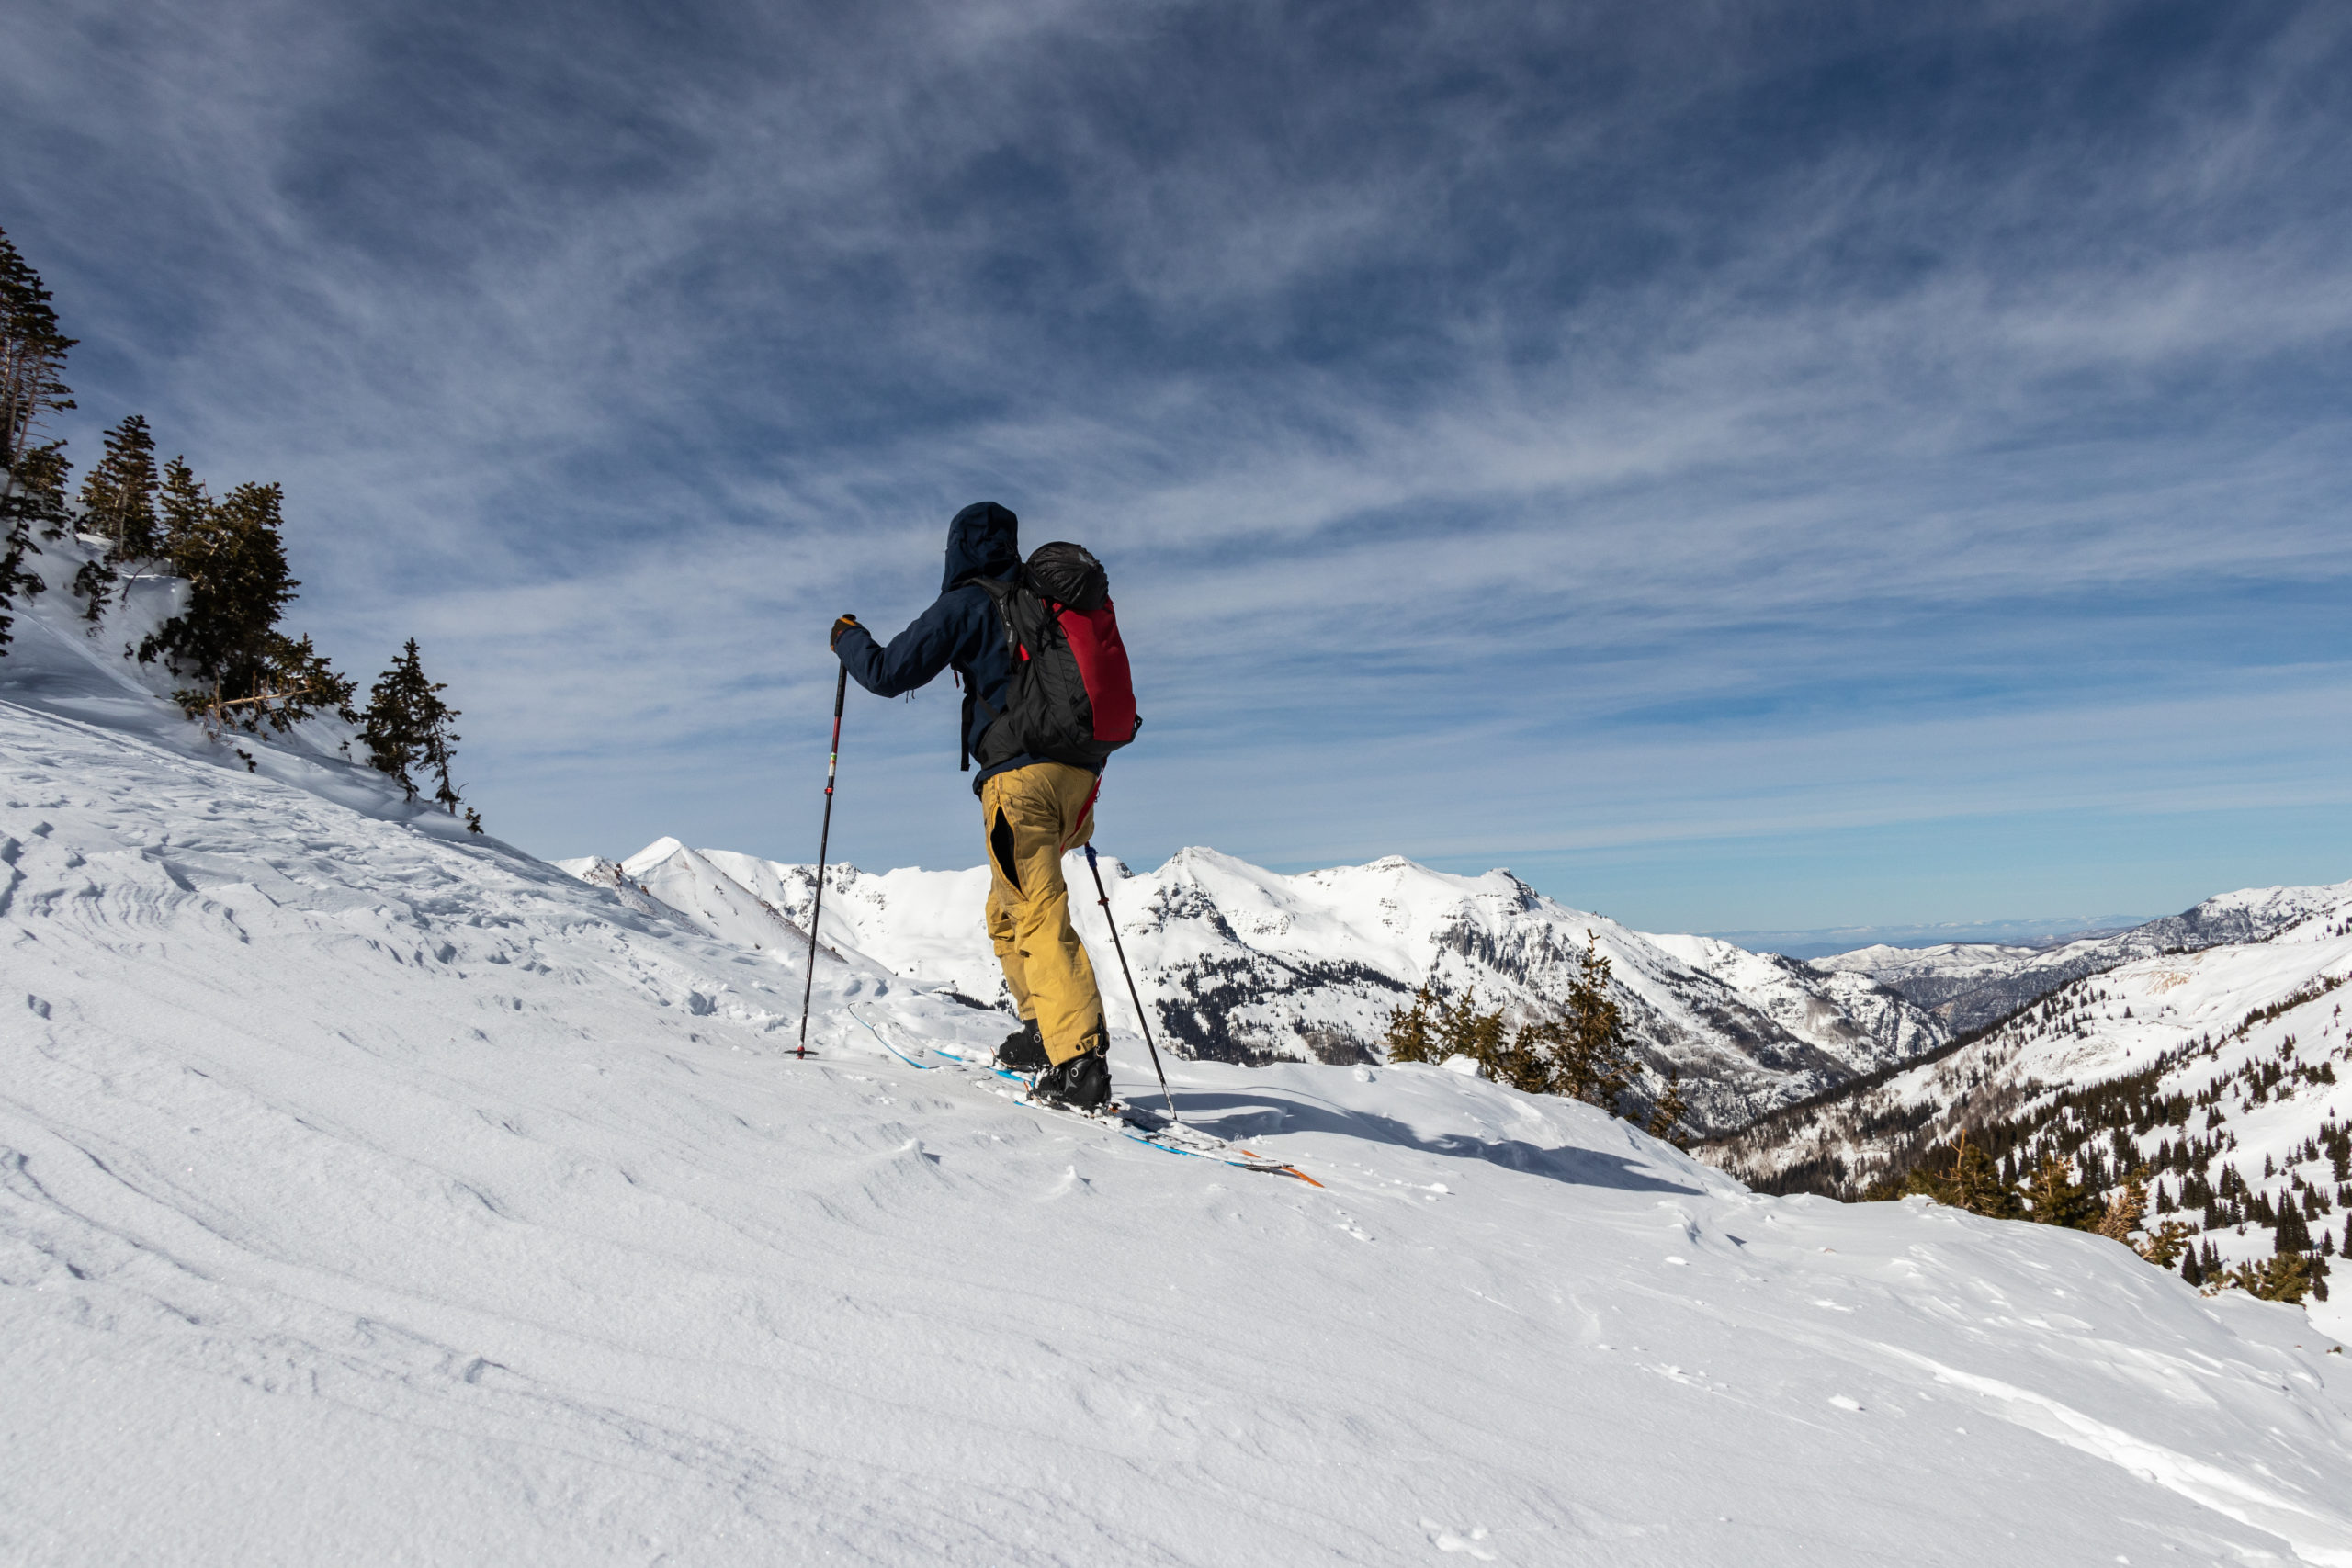 Hero image- Backcountry skiing commandments